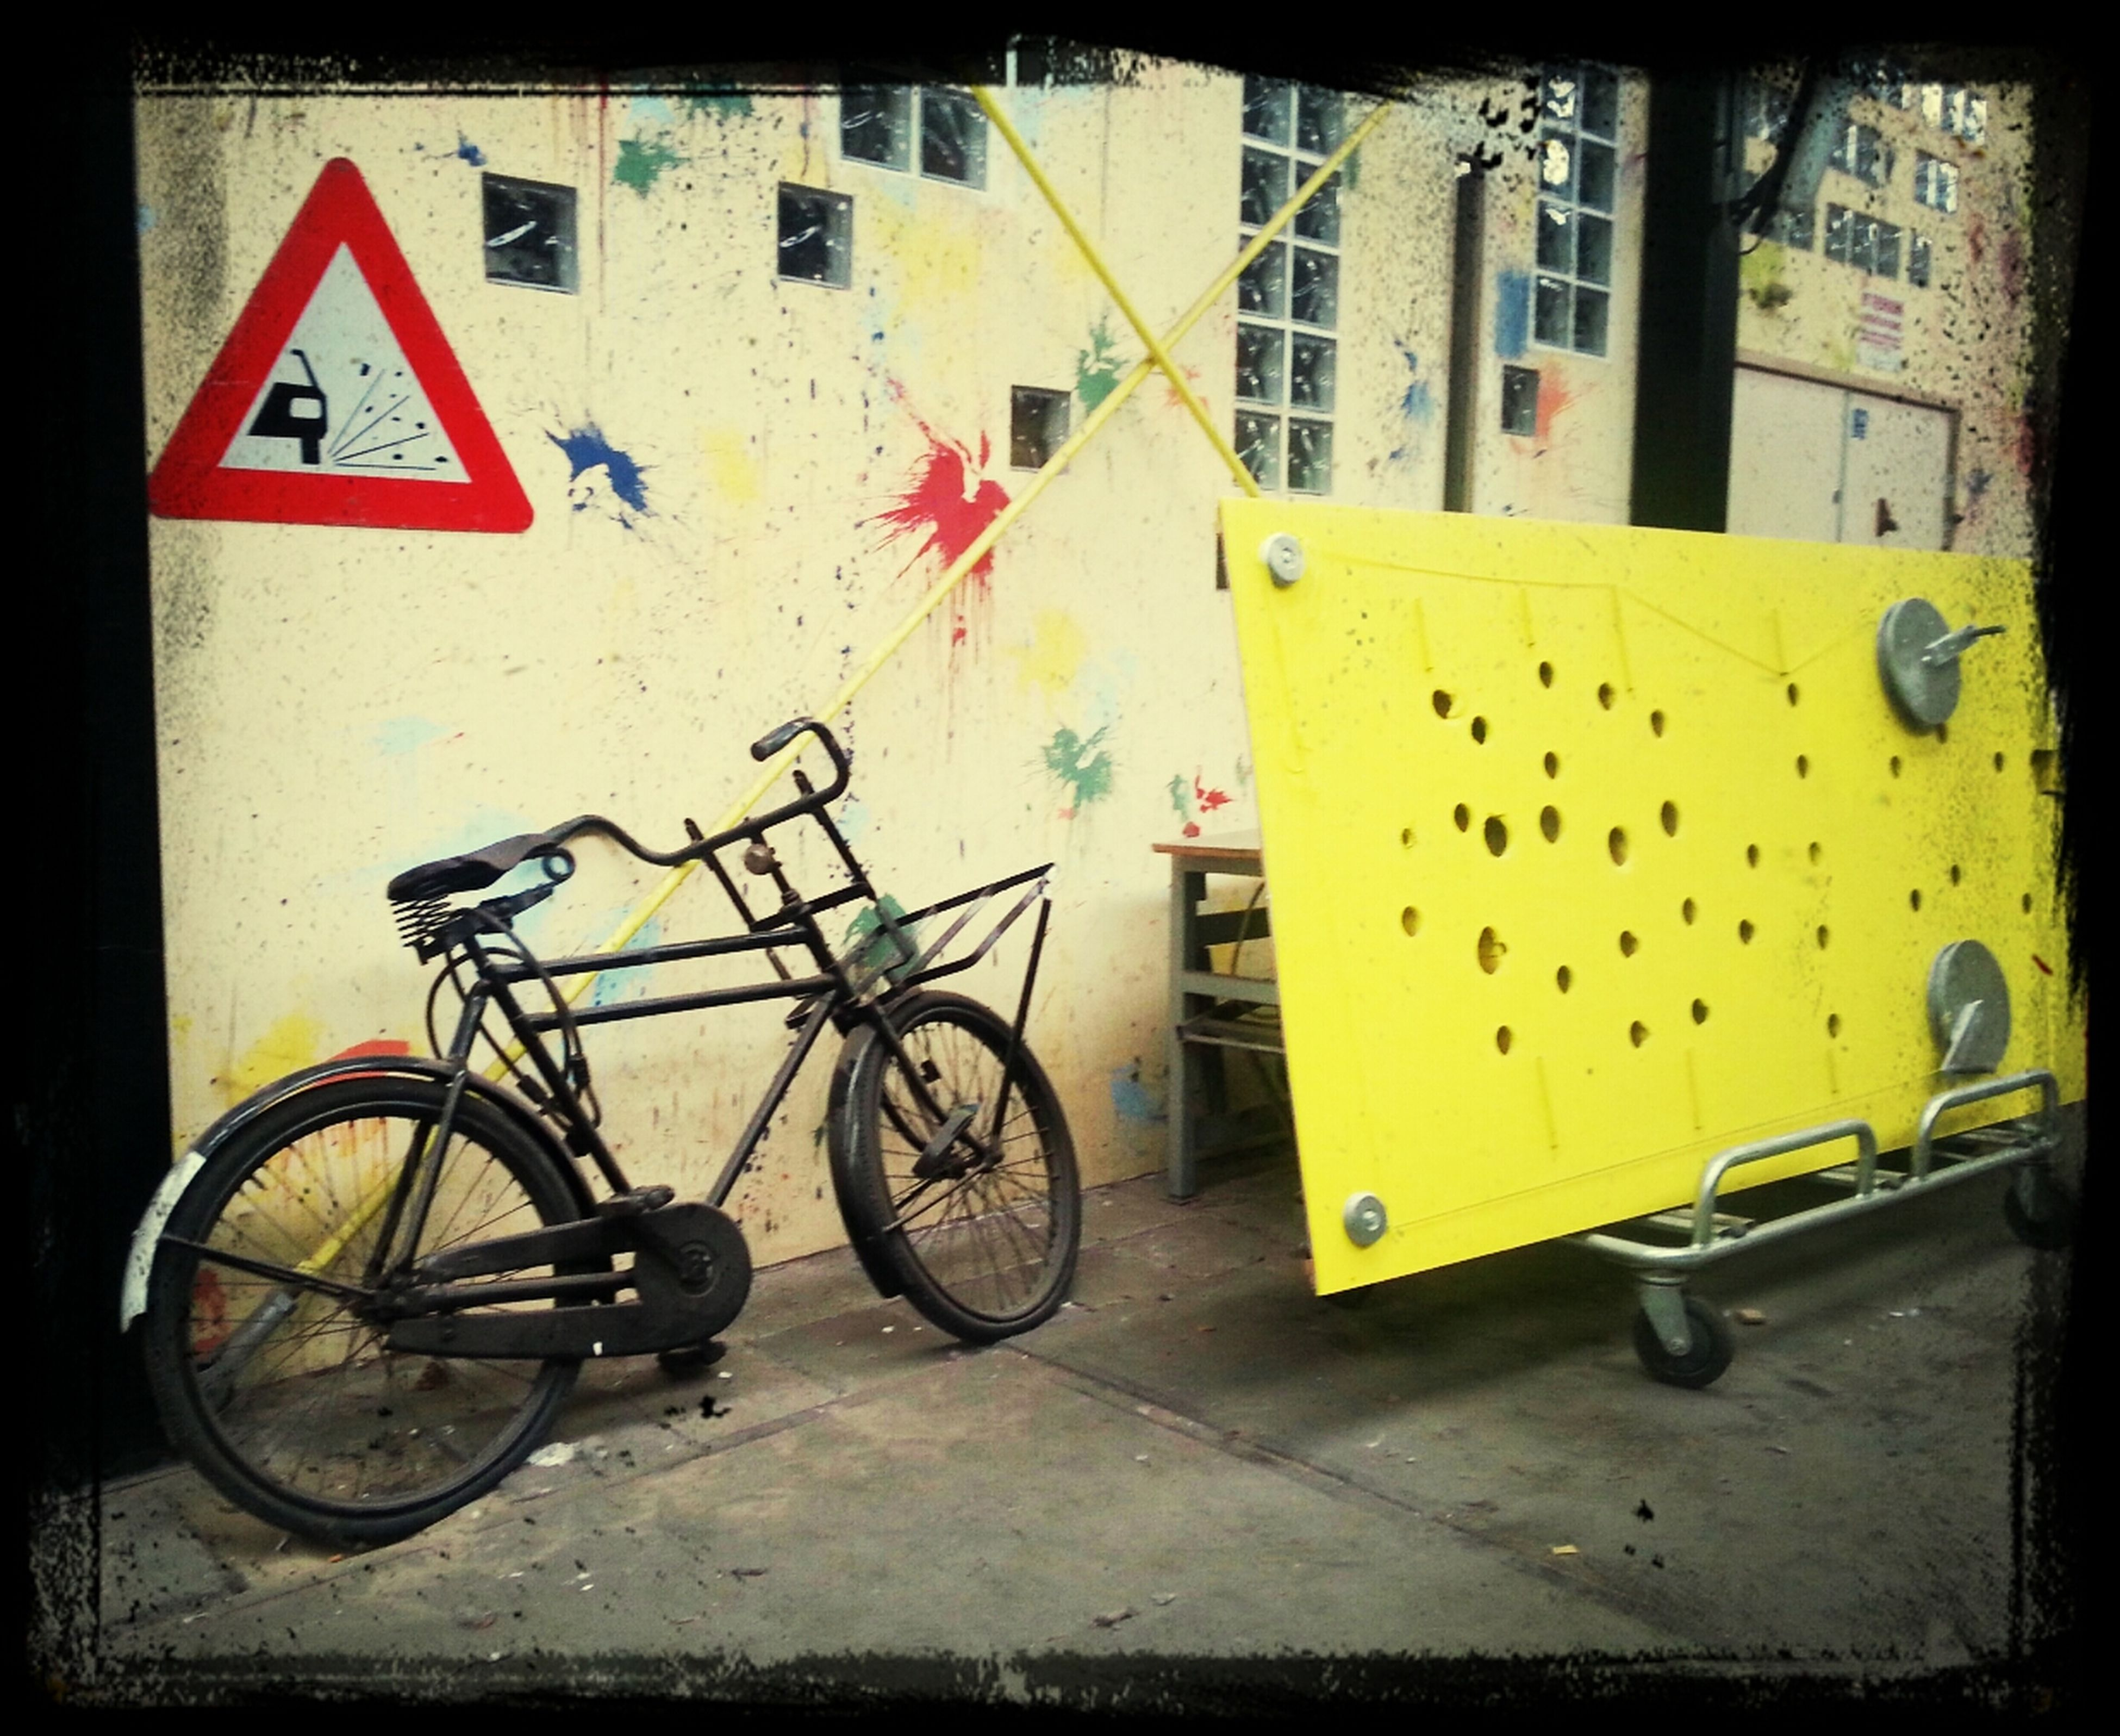 bicycle, transportation, mode of transport, land vehicle, parked, stationary, parking, street, building exterior, cycle, built structure, architecture, side view, yellow, car, travel, road, sidewalk, day, parking lot